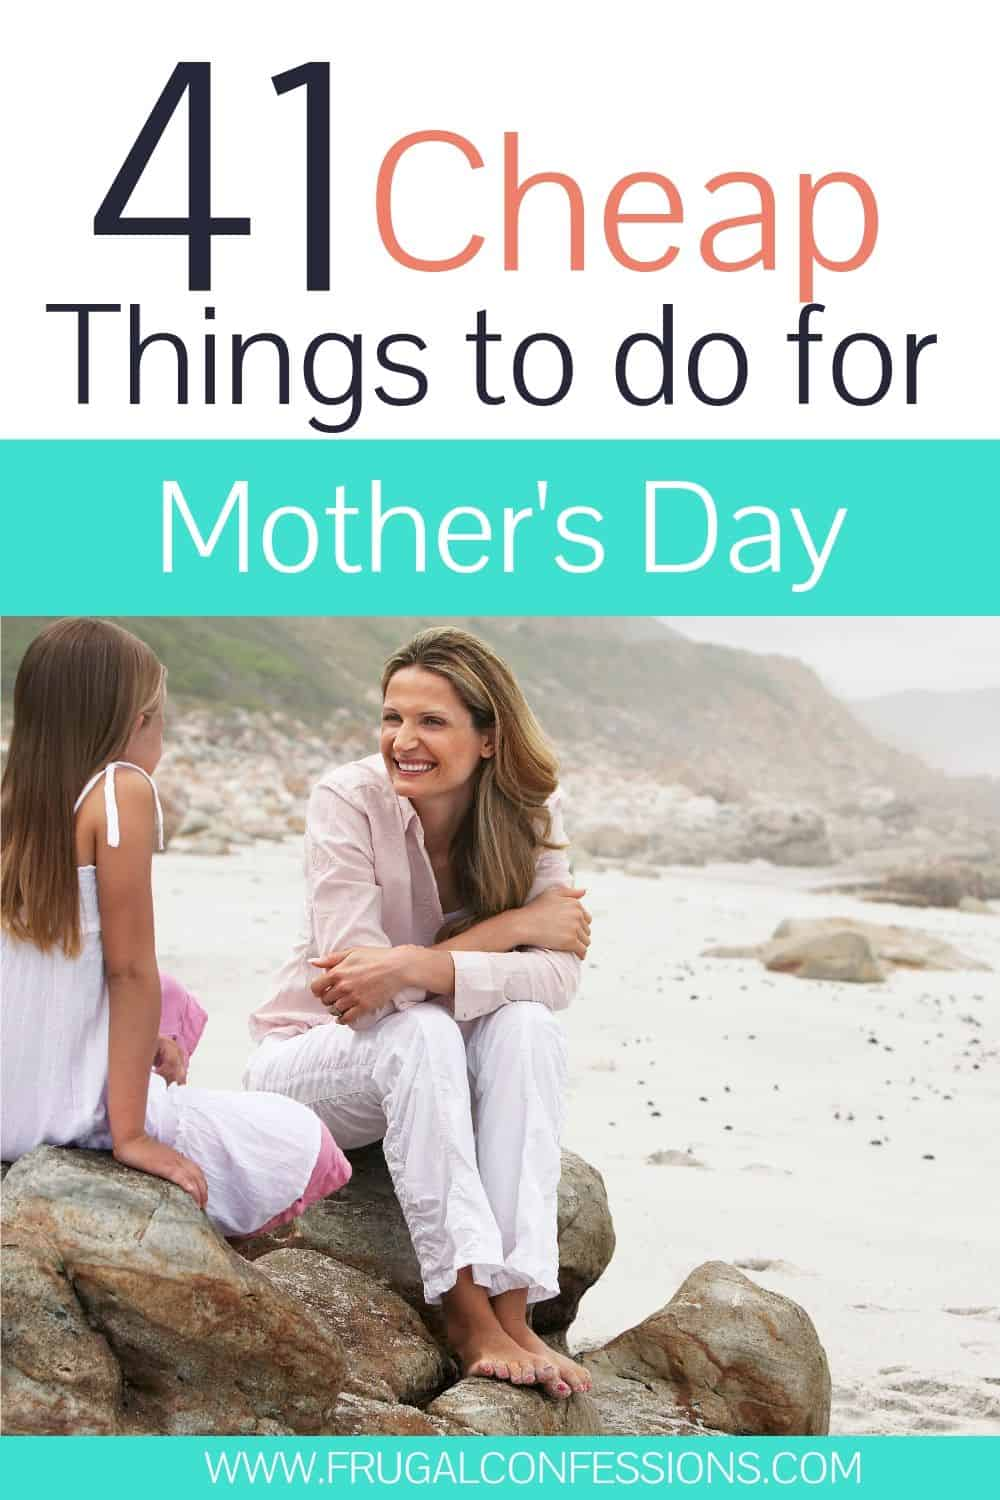 """mother and daughter talking on beach rock, text overlay """"41 cheap things to do for mother's day"""""""